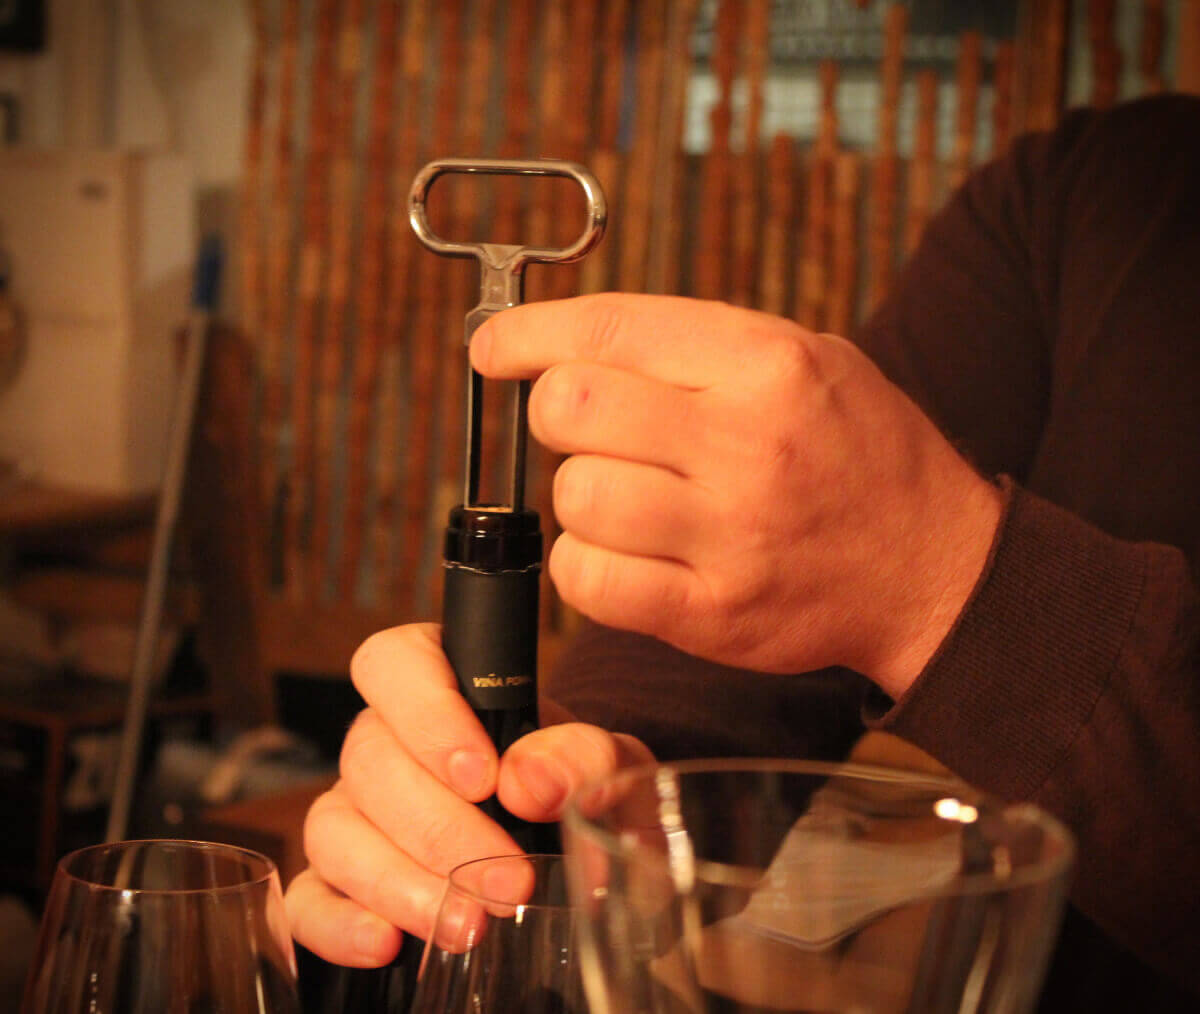 "The ""Ah, So"" wine opener is also called the ""Butler's Thief."" It opens a bottle of wine without leaving a mark on the cork - brilliant if you're clumsy.... or stealing! It makes a great show and tell moment at a dinner party, too."